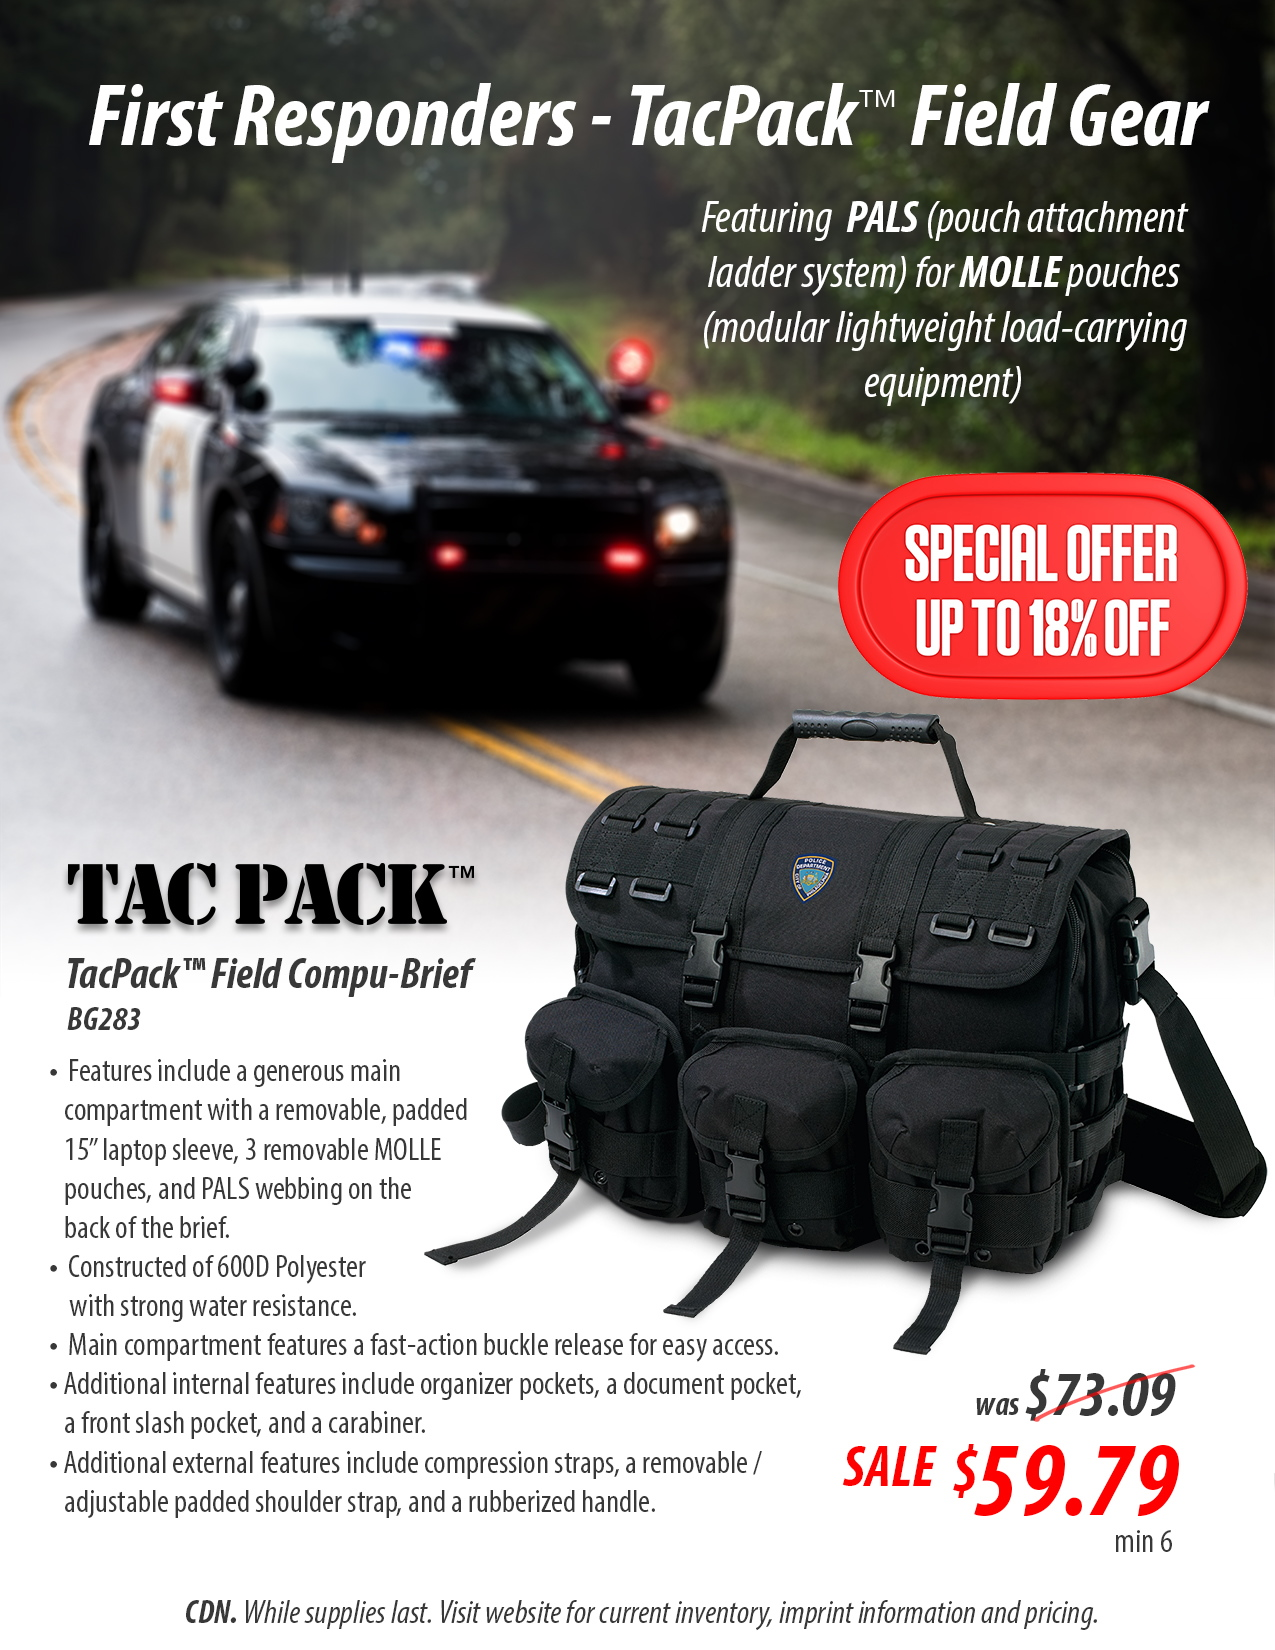 First responders tacpack